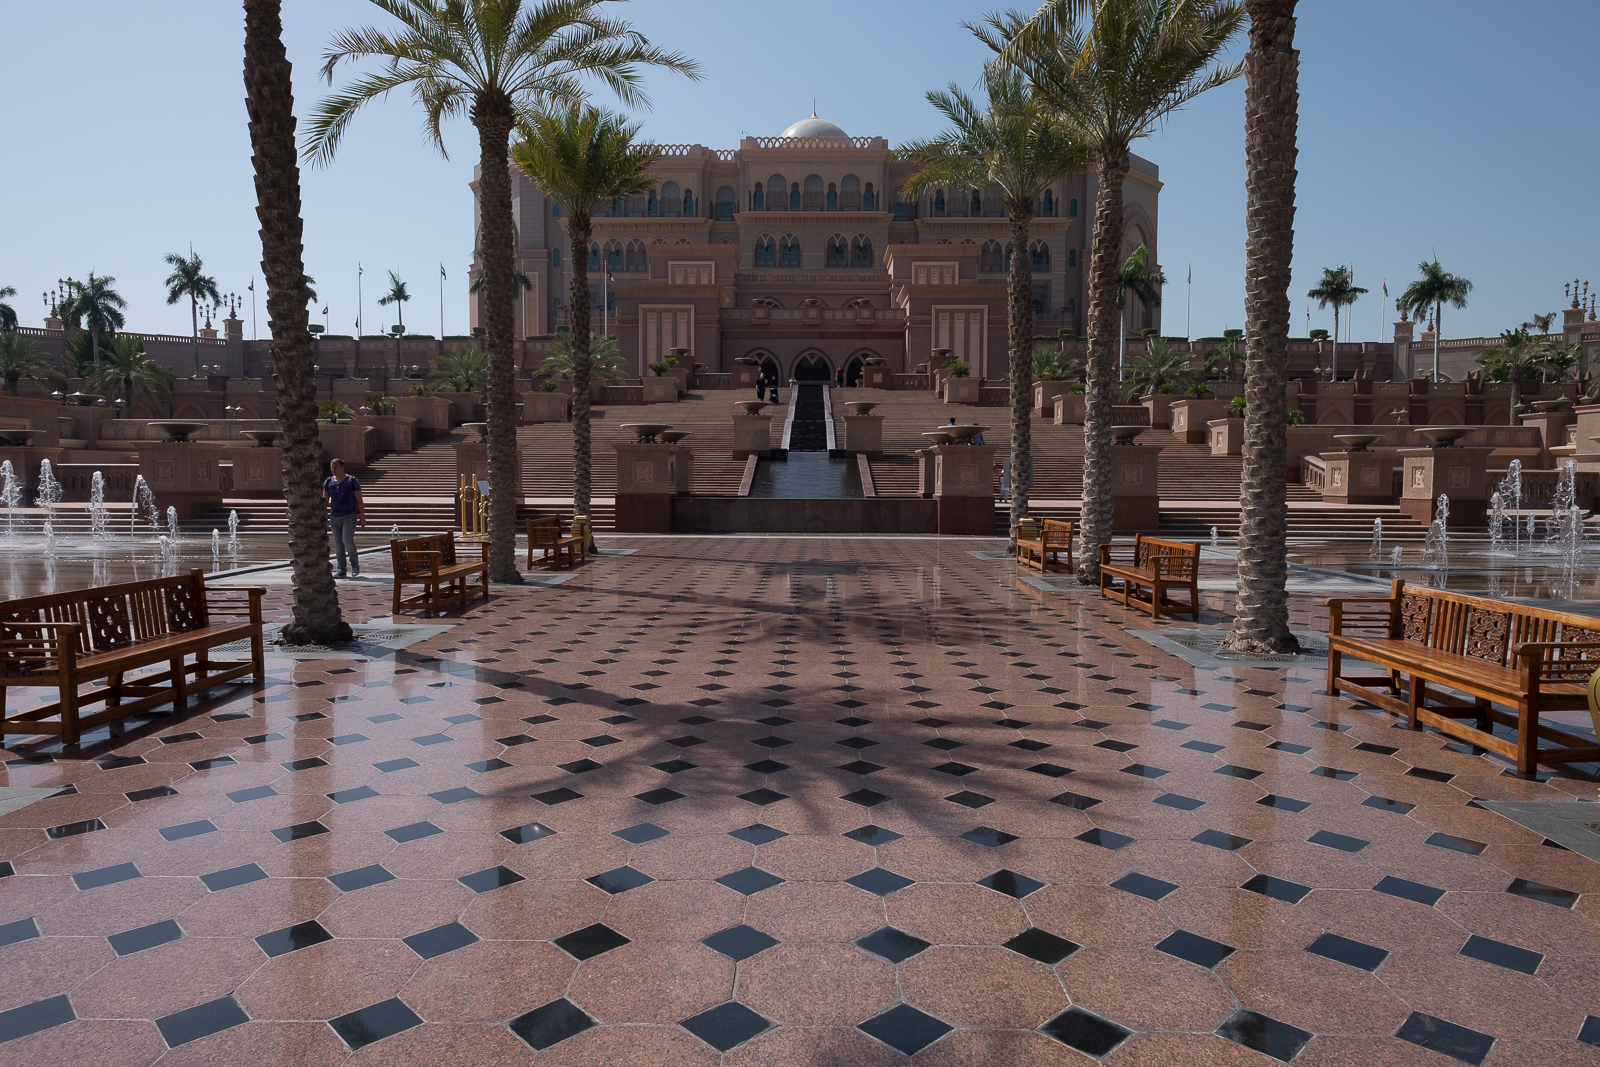 Exterior view of the Emirates Palace Hotel, Abu Dhabi